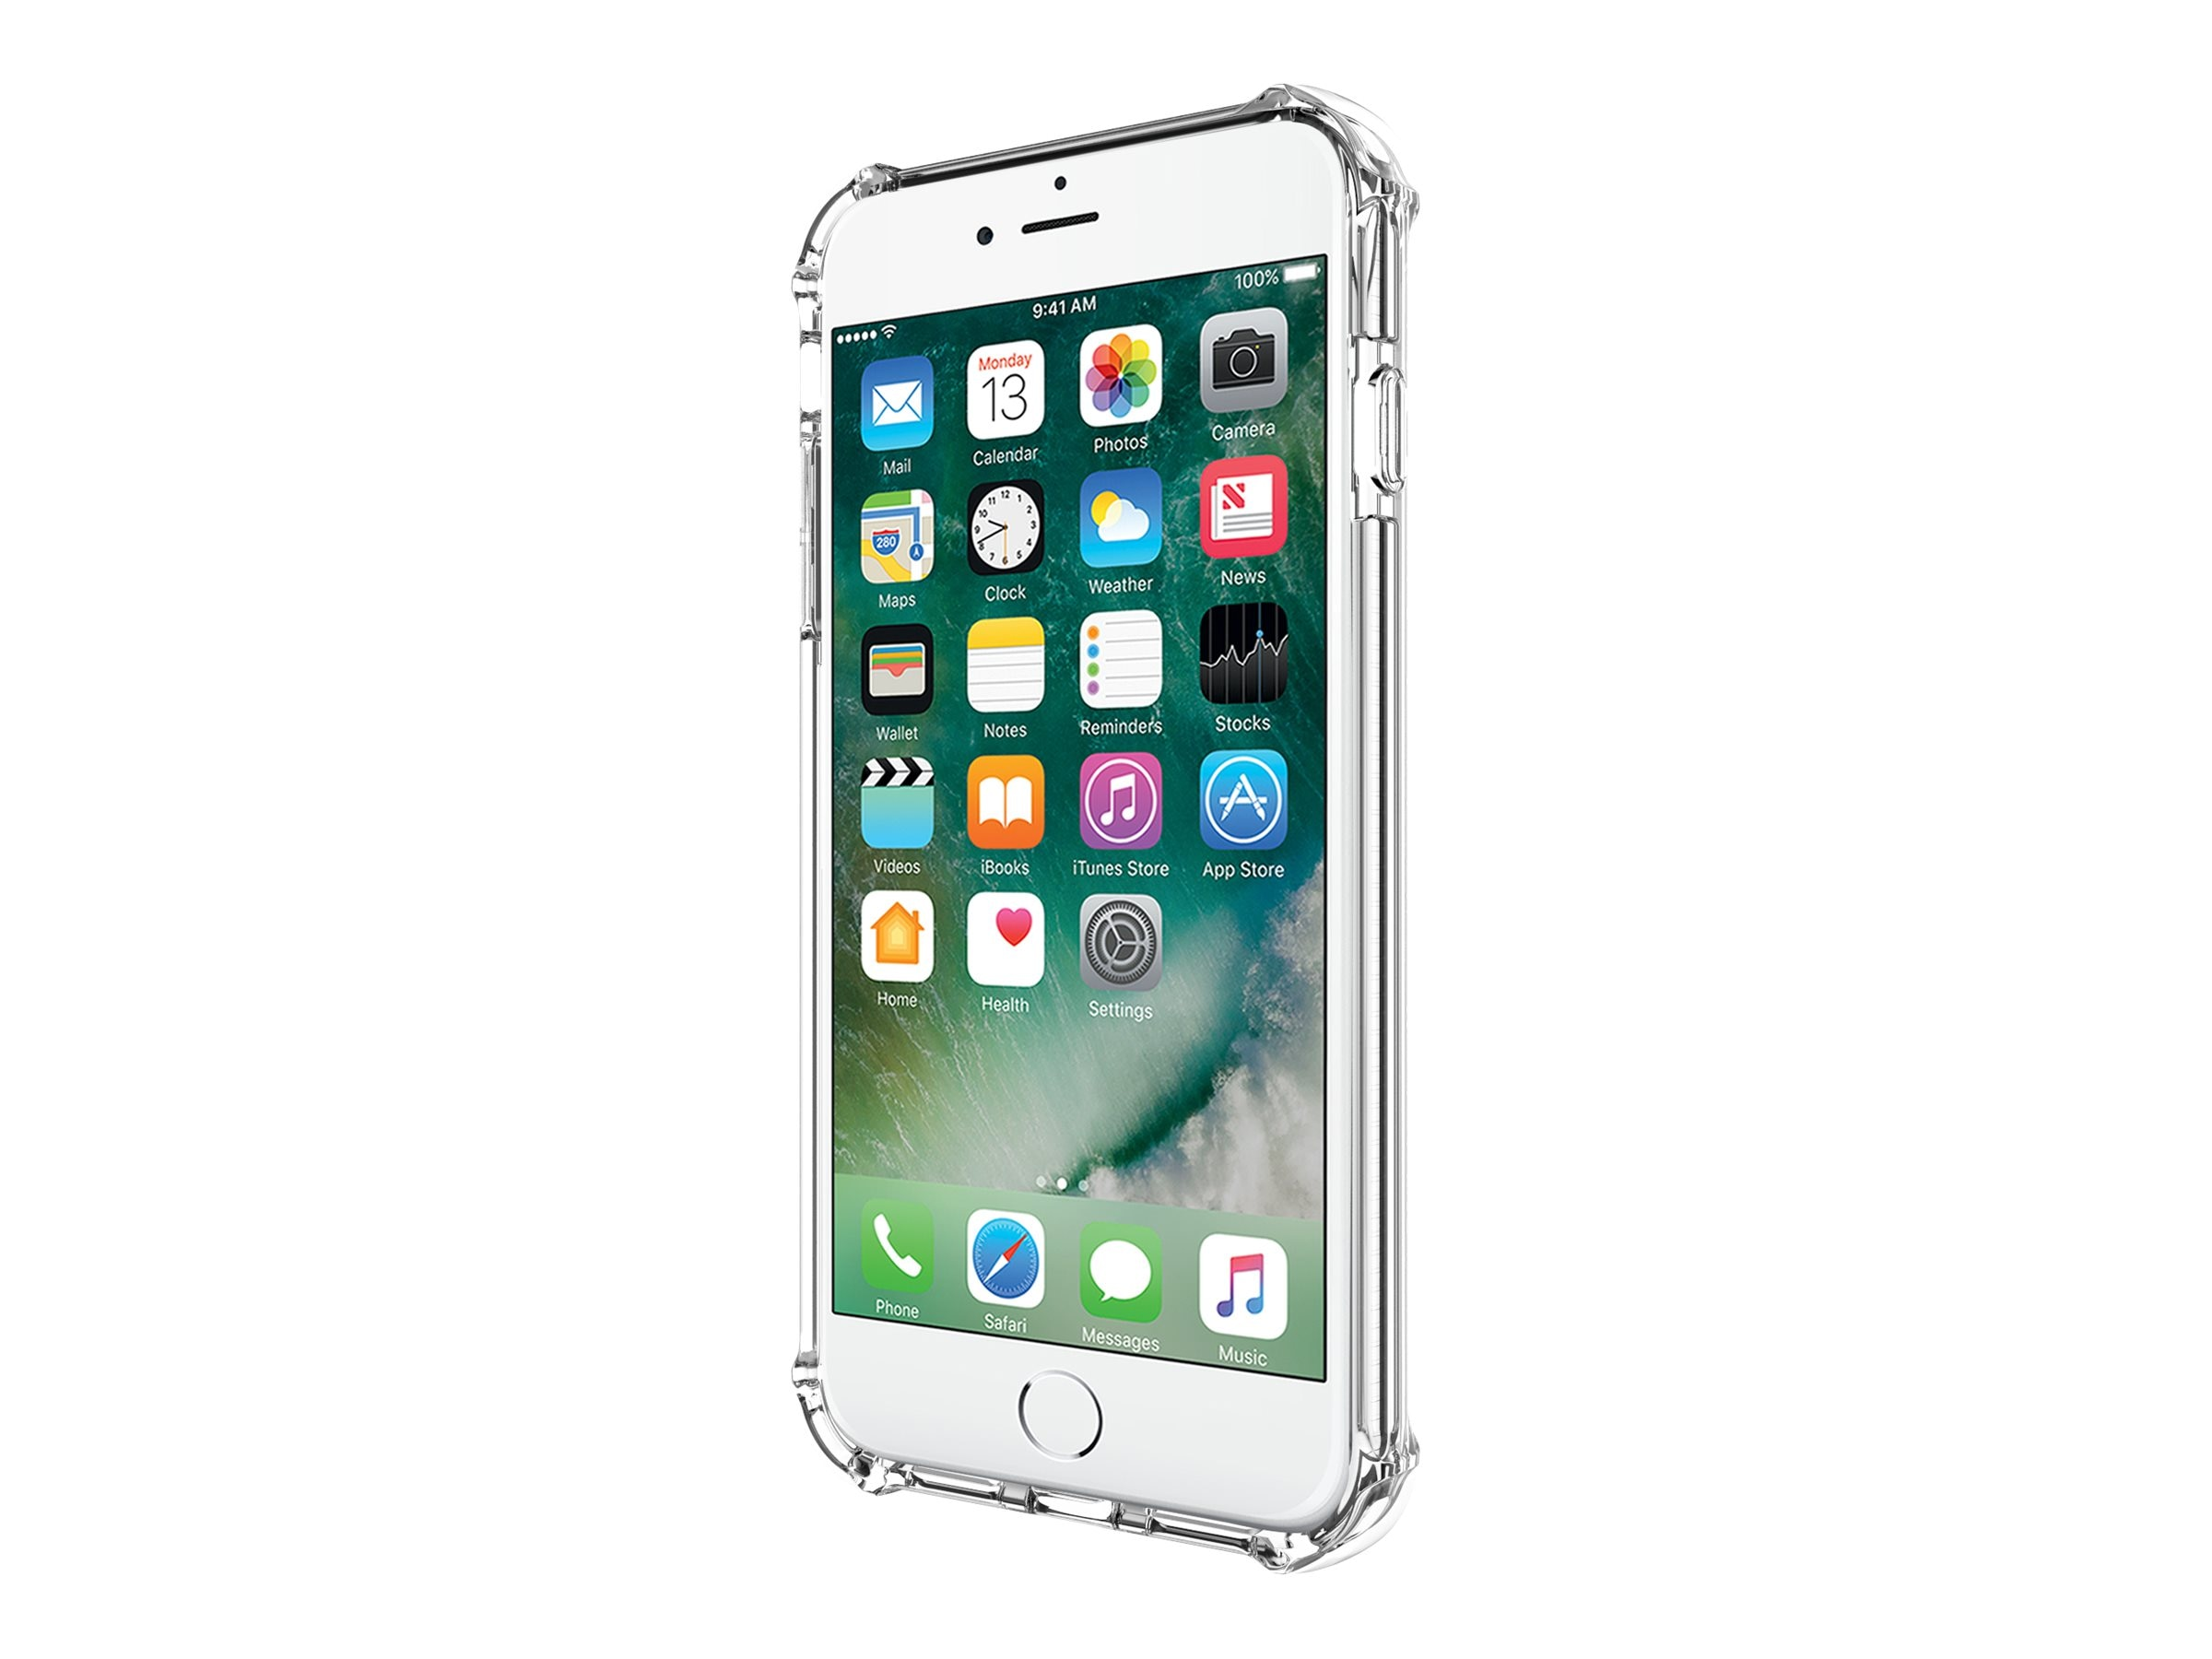 Incipio Reprieve Sport Protective Case with Reinforced Corners for iPhone 7 Plus, Clear Clear, IPH-1496-CLR